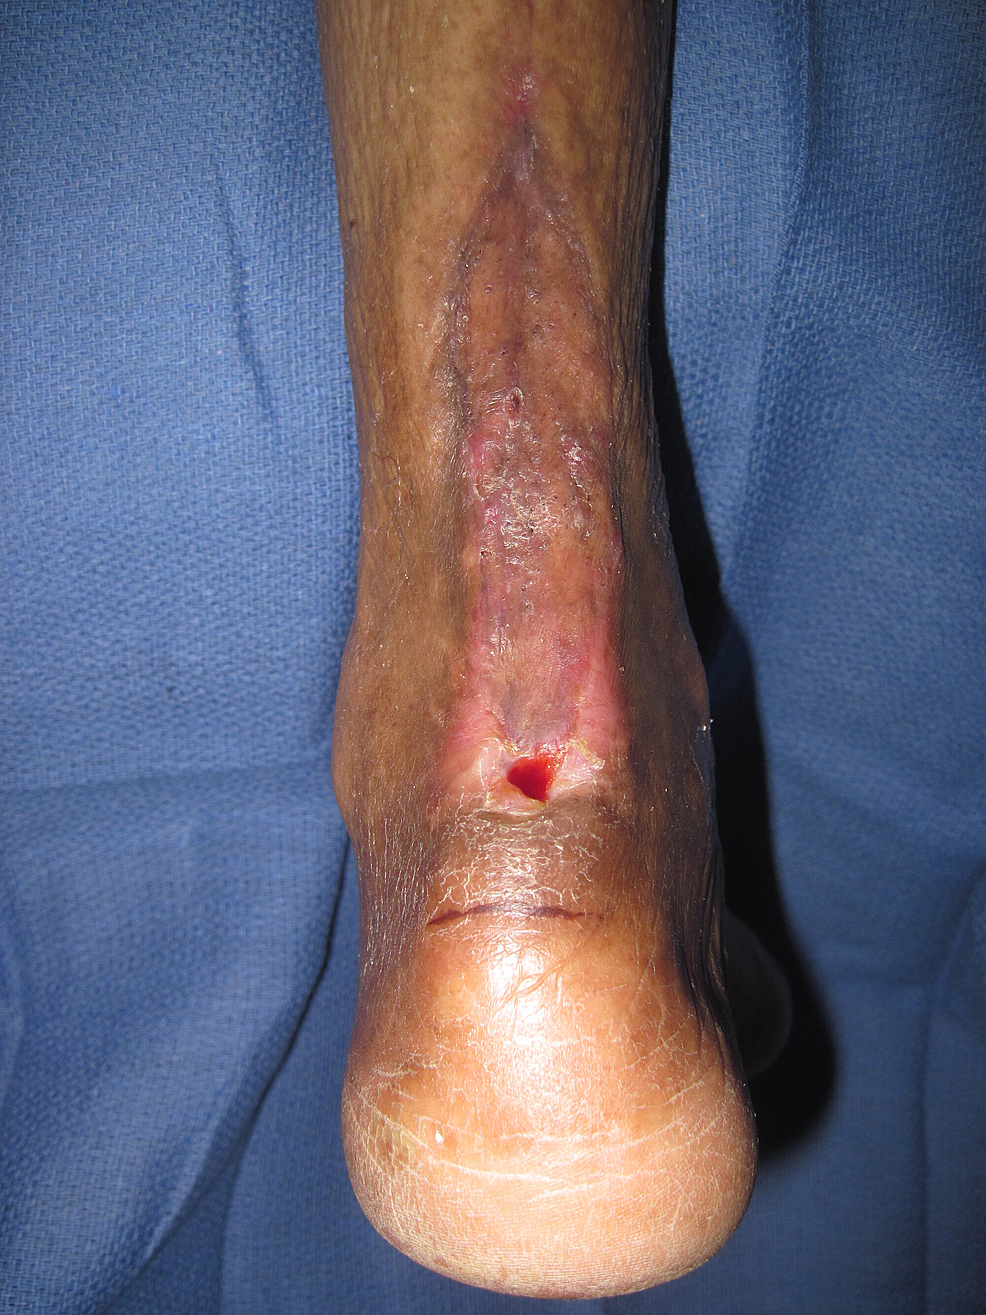 Two-months-after-treatment.